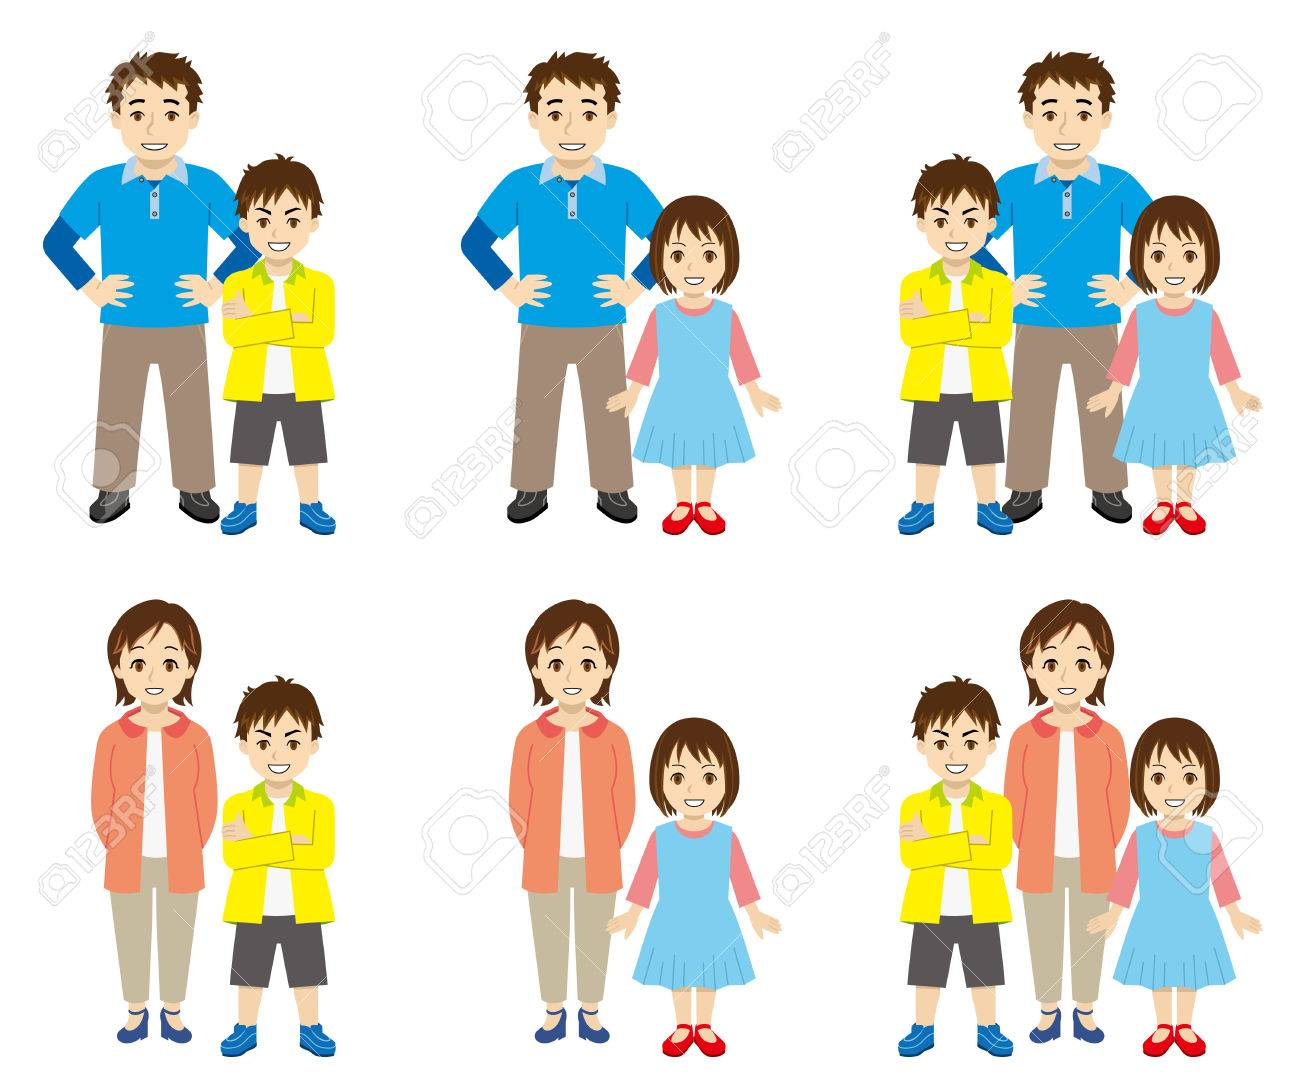 Single Parent Family Royalty Free Cliparts, Vectors, And Stock.